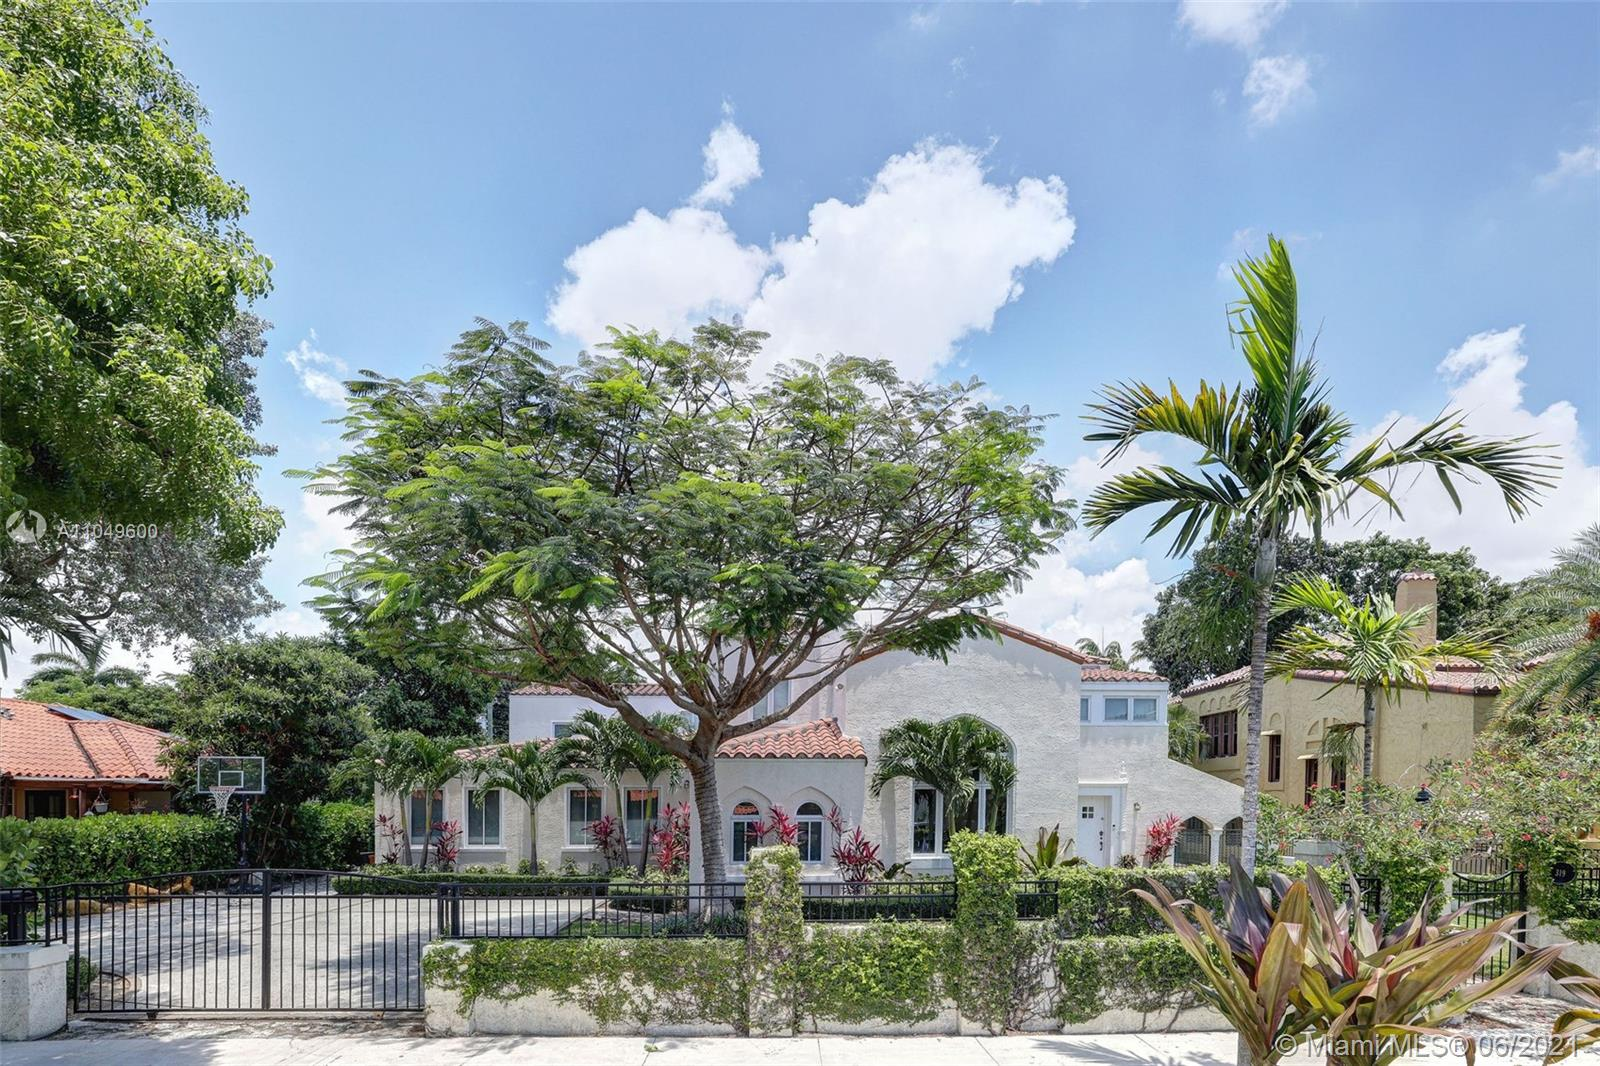 Spanning 5,123 SF, this 2-story home offers 6 beds, 4.5 baths, and features true Coral Gables charm with Cuban tile, Cypress doors and coffered ceilings. Foyer entry, Formal Dining, and impressive Living Room with soaring ceilings supply luxurious elegance to any gathering. Custom eat-in Kitchen includes a Butler's Pantry and high-end appliances. Master Suite features sitting area, walk-in closet, steam shower and separate tub. This gated 13,917 SF lot boasts whimsical courtyards, a covered patio, spacious yard with heated pool and spa. Large Family Room. Additional features include Breakfast Nook and Office. Ideal for comfort and easy entertaining alike. Designed by award winning architect, Jason Chandler. Minutes from Downtown, Coconut Grove, shops, eateries, and A+ rated schools.